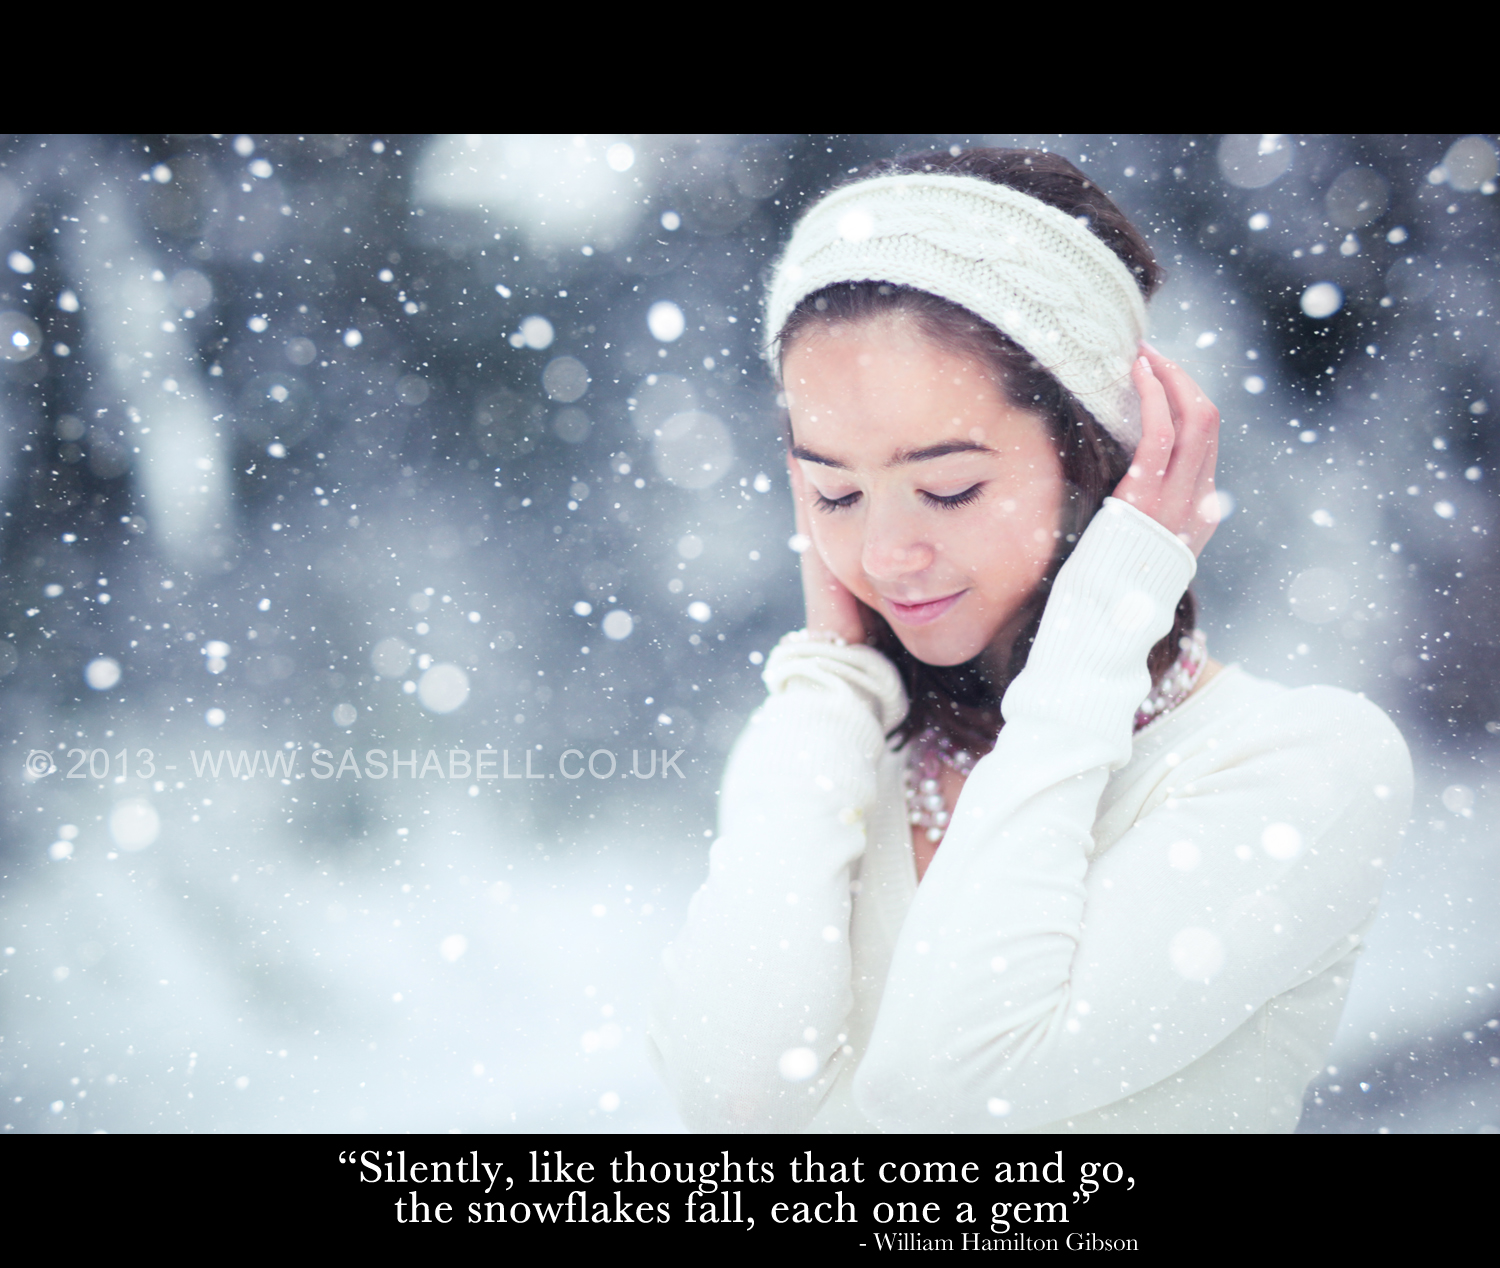 """Silently, like thoughts that come and go, the snowflakes fall, each one a gem"""